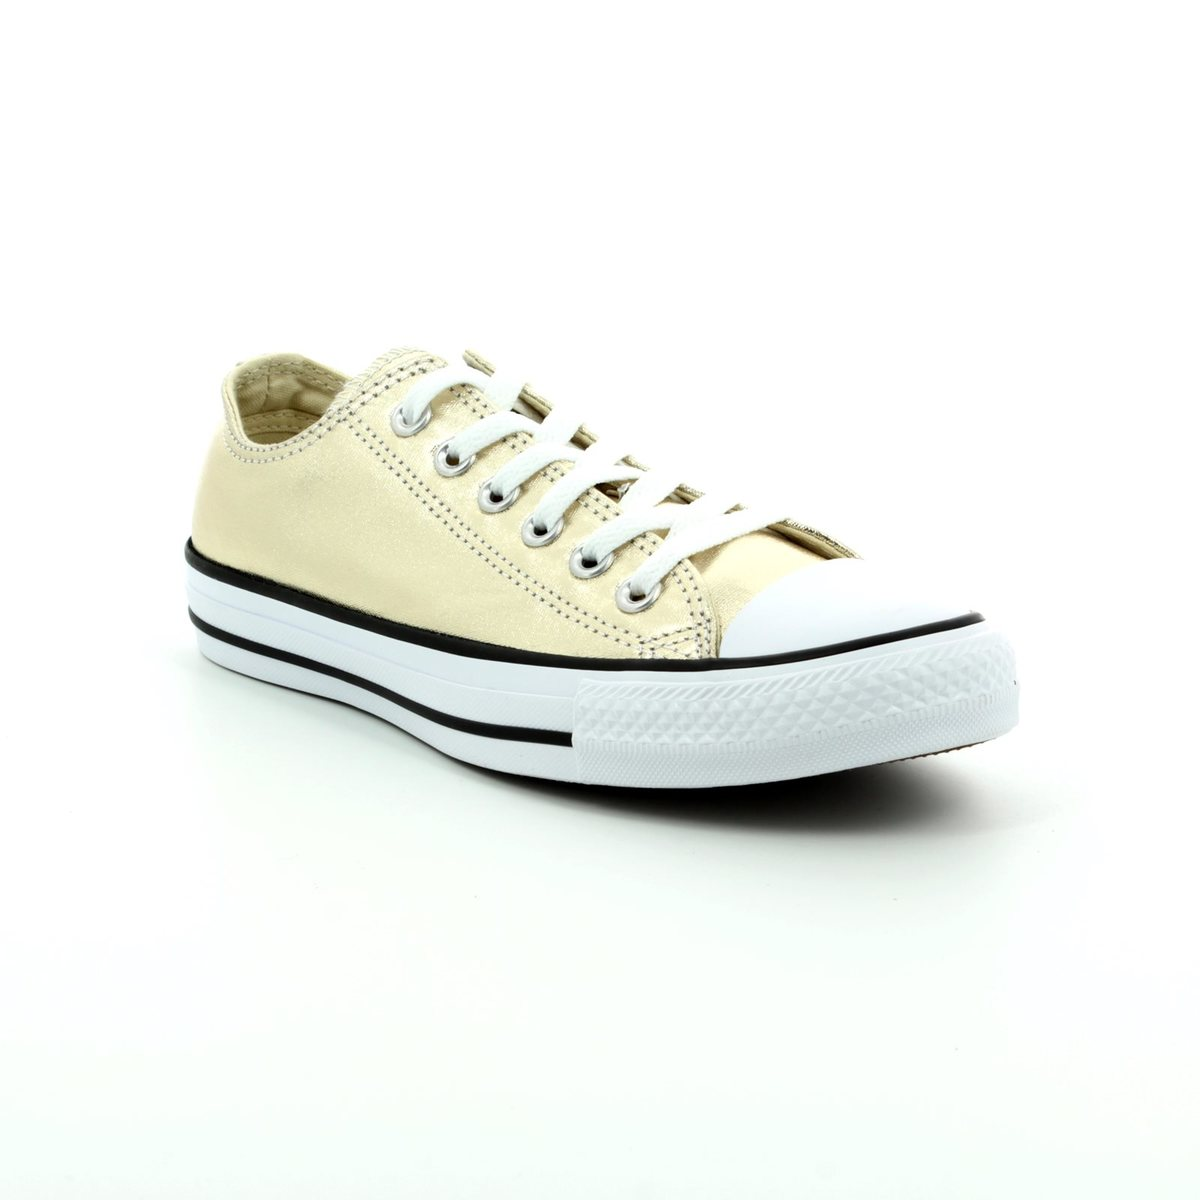 eda00246e9b4 Converse Trainers - Gold - 153181C Chuck Taylor All Star OX Light Gold